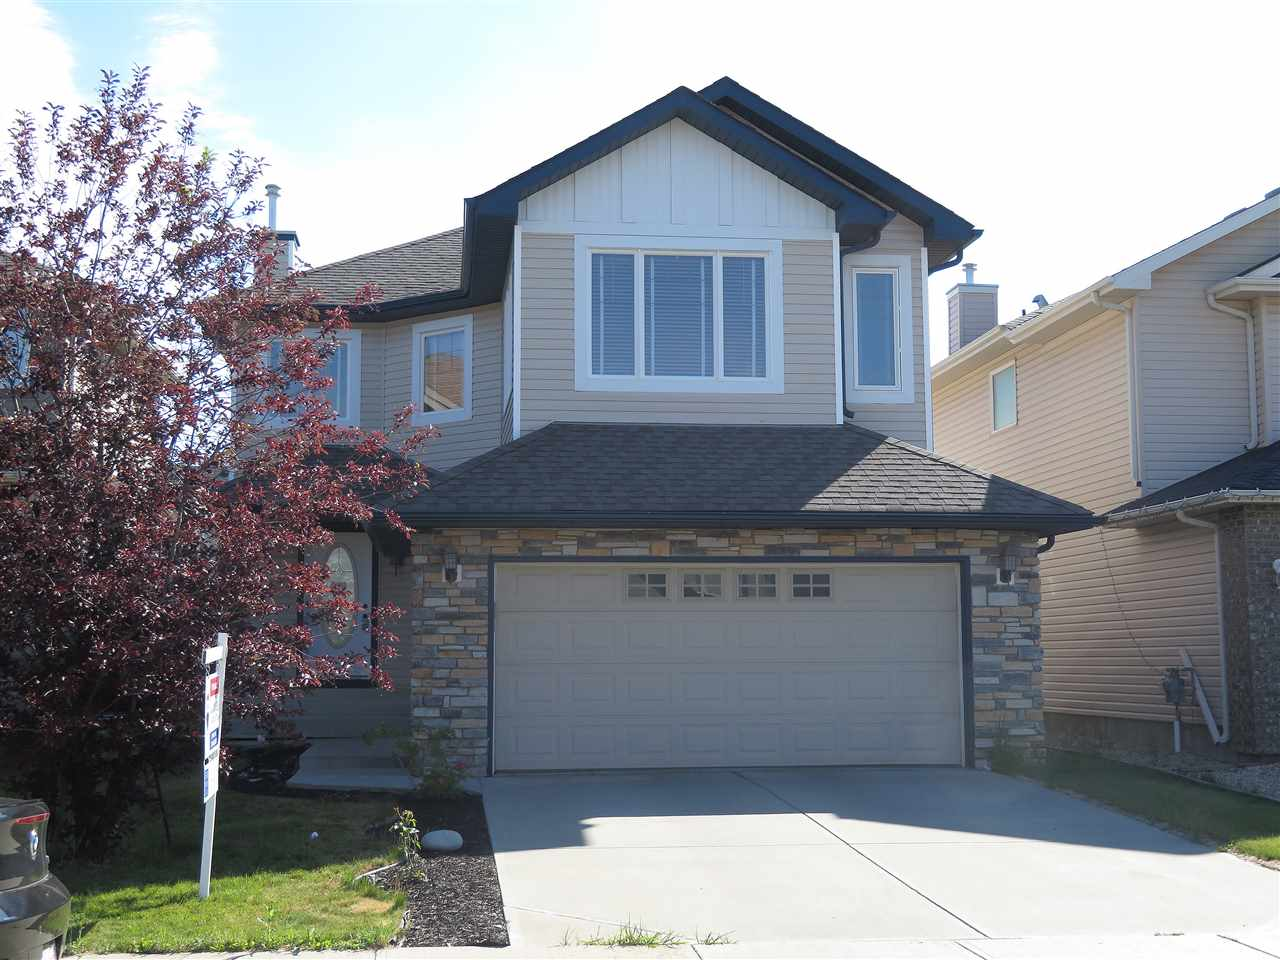 Main Photo: 7356 SINGER Way in Edmonton: Zone 14 House for sale : MLS®# E4124830